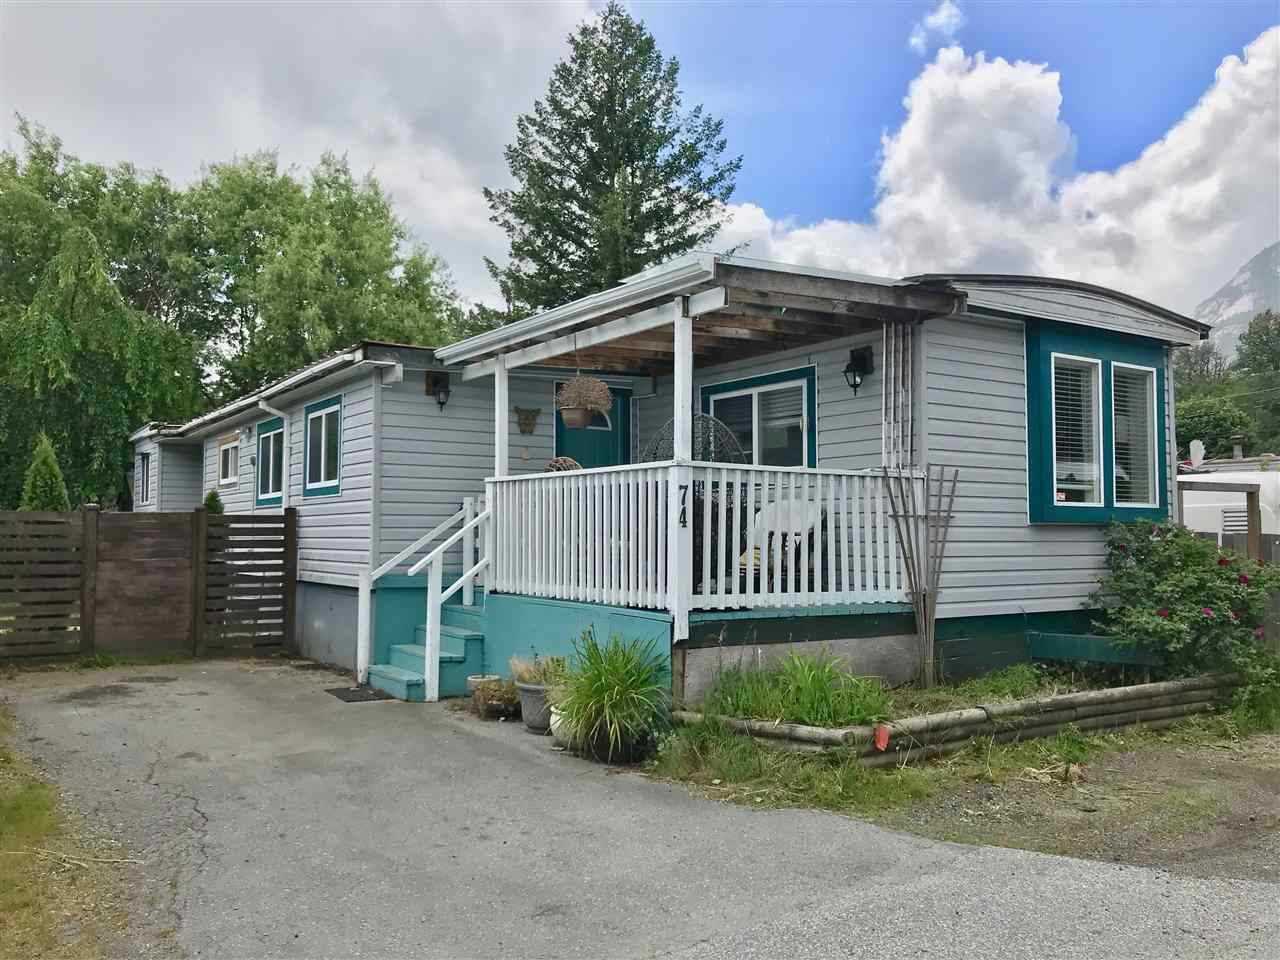 74 40157 GOVERNMENT ROAD, 3 bed, 1 bath, at $219,000